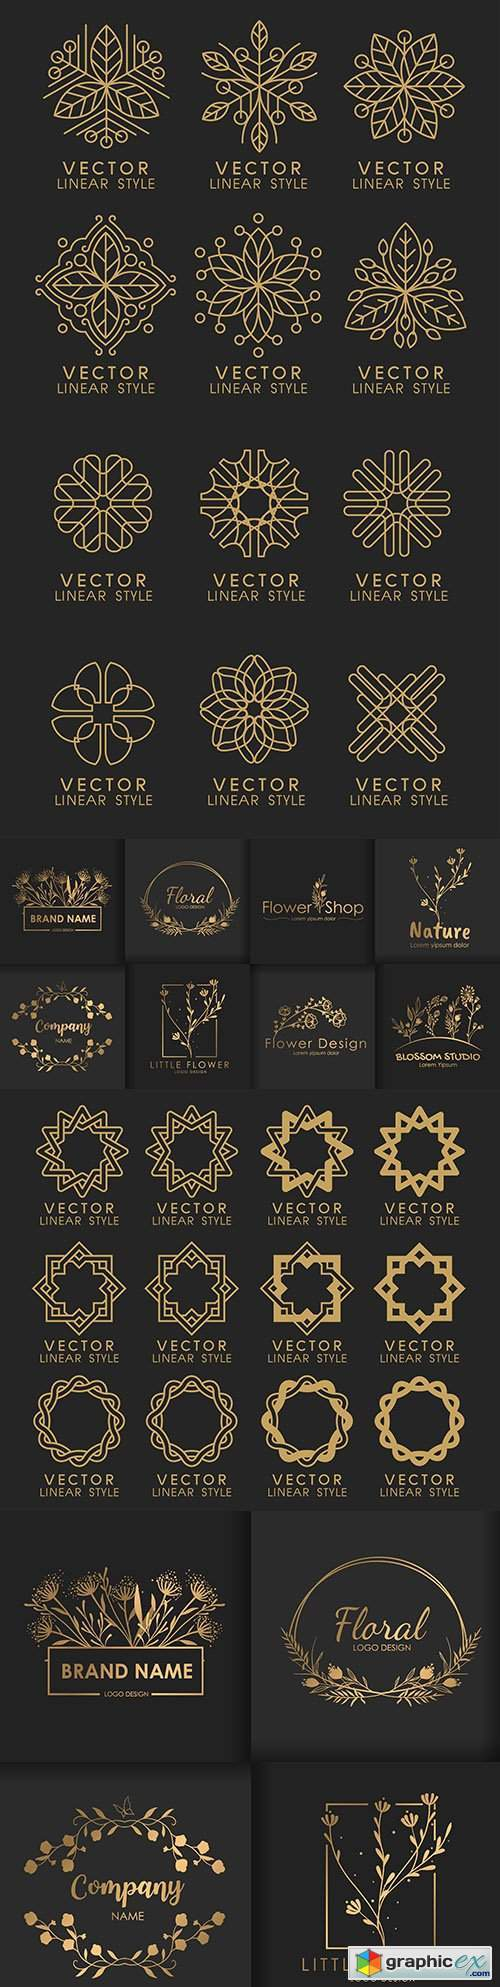 Gold set of linear and floral decorative logos design